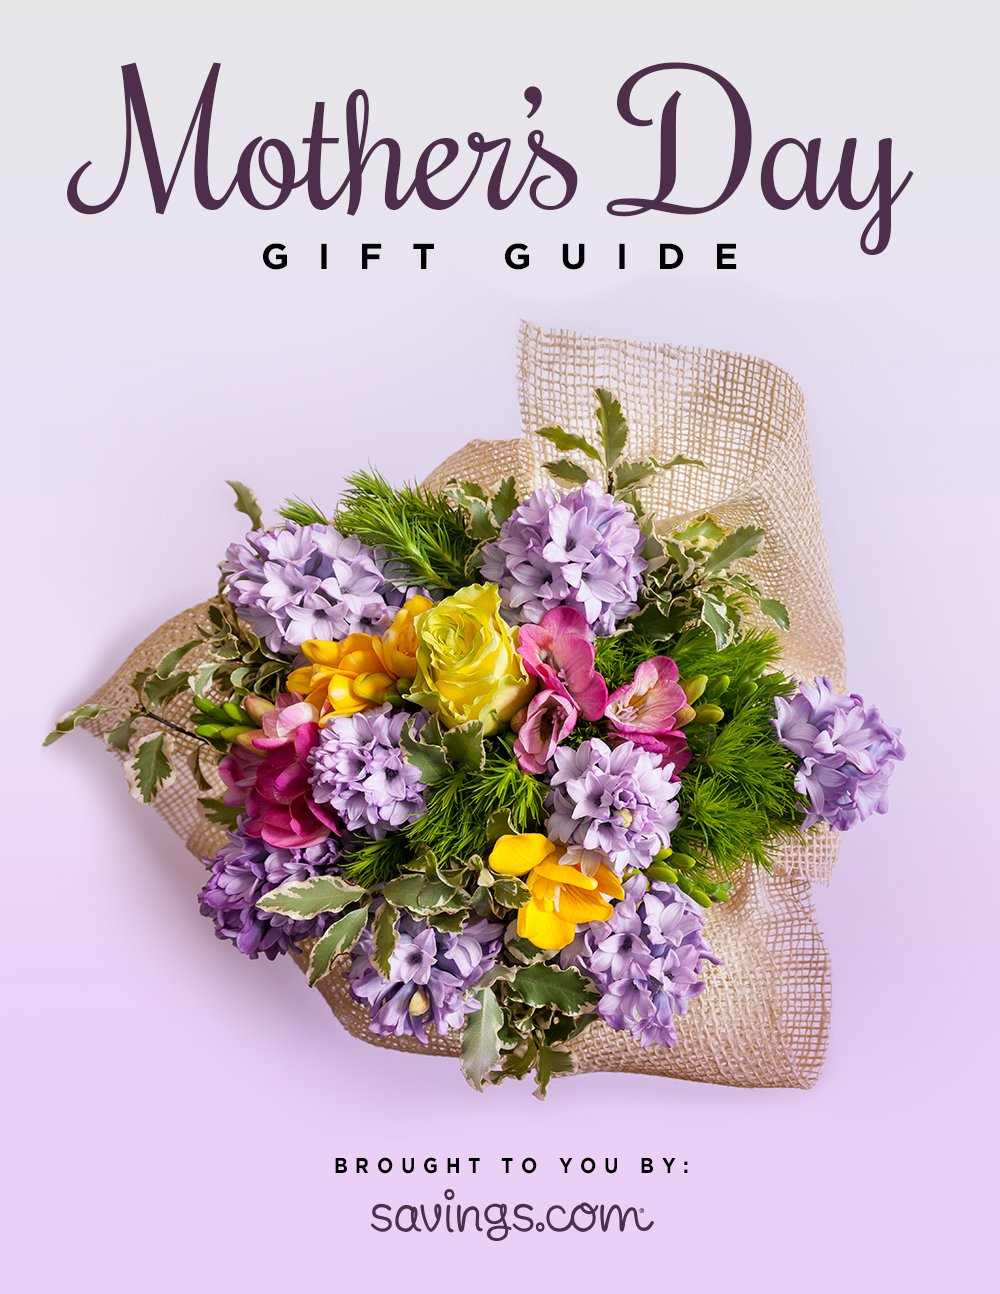 Mother's Day Gift Guide ad: #MothersDaySavings